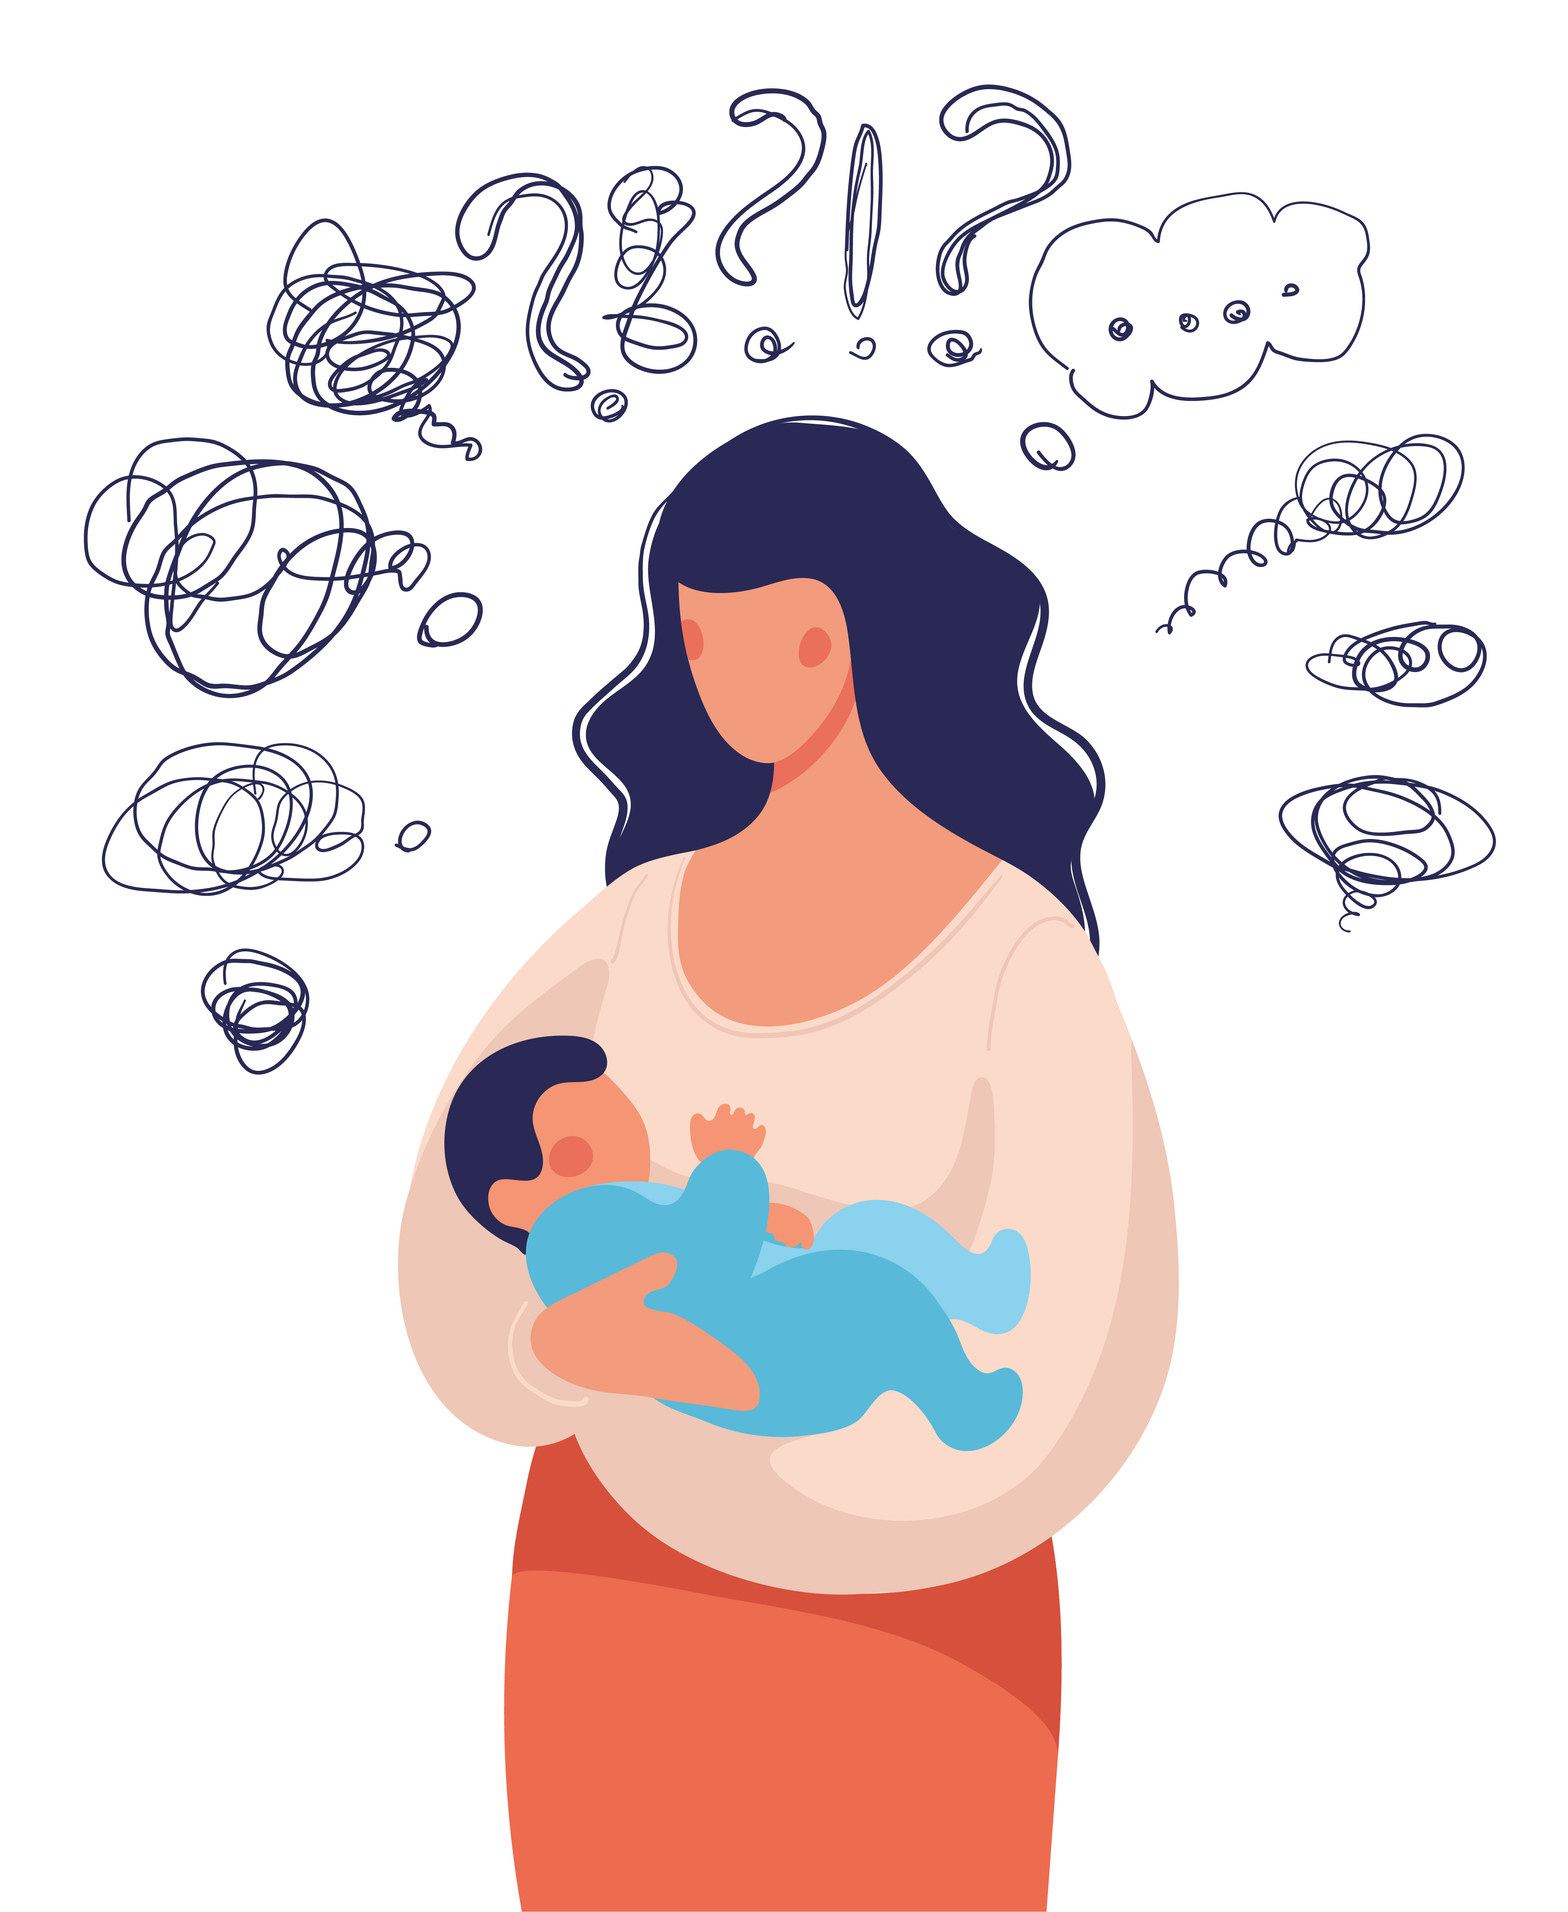 An illustration of a woman holding a baby and having sad and negative thoughts